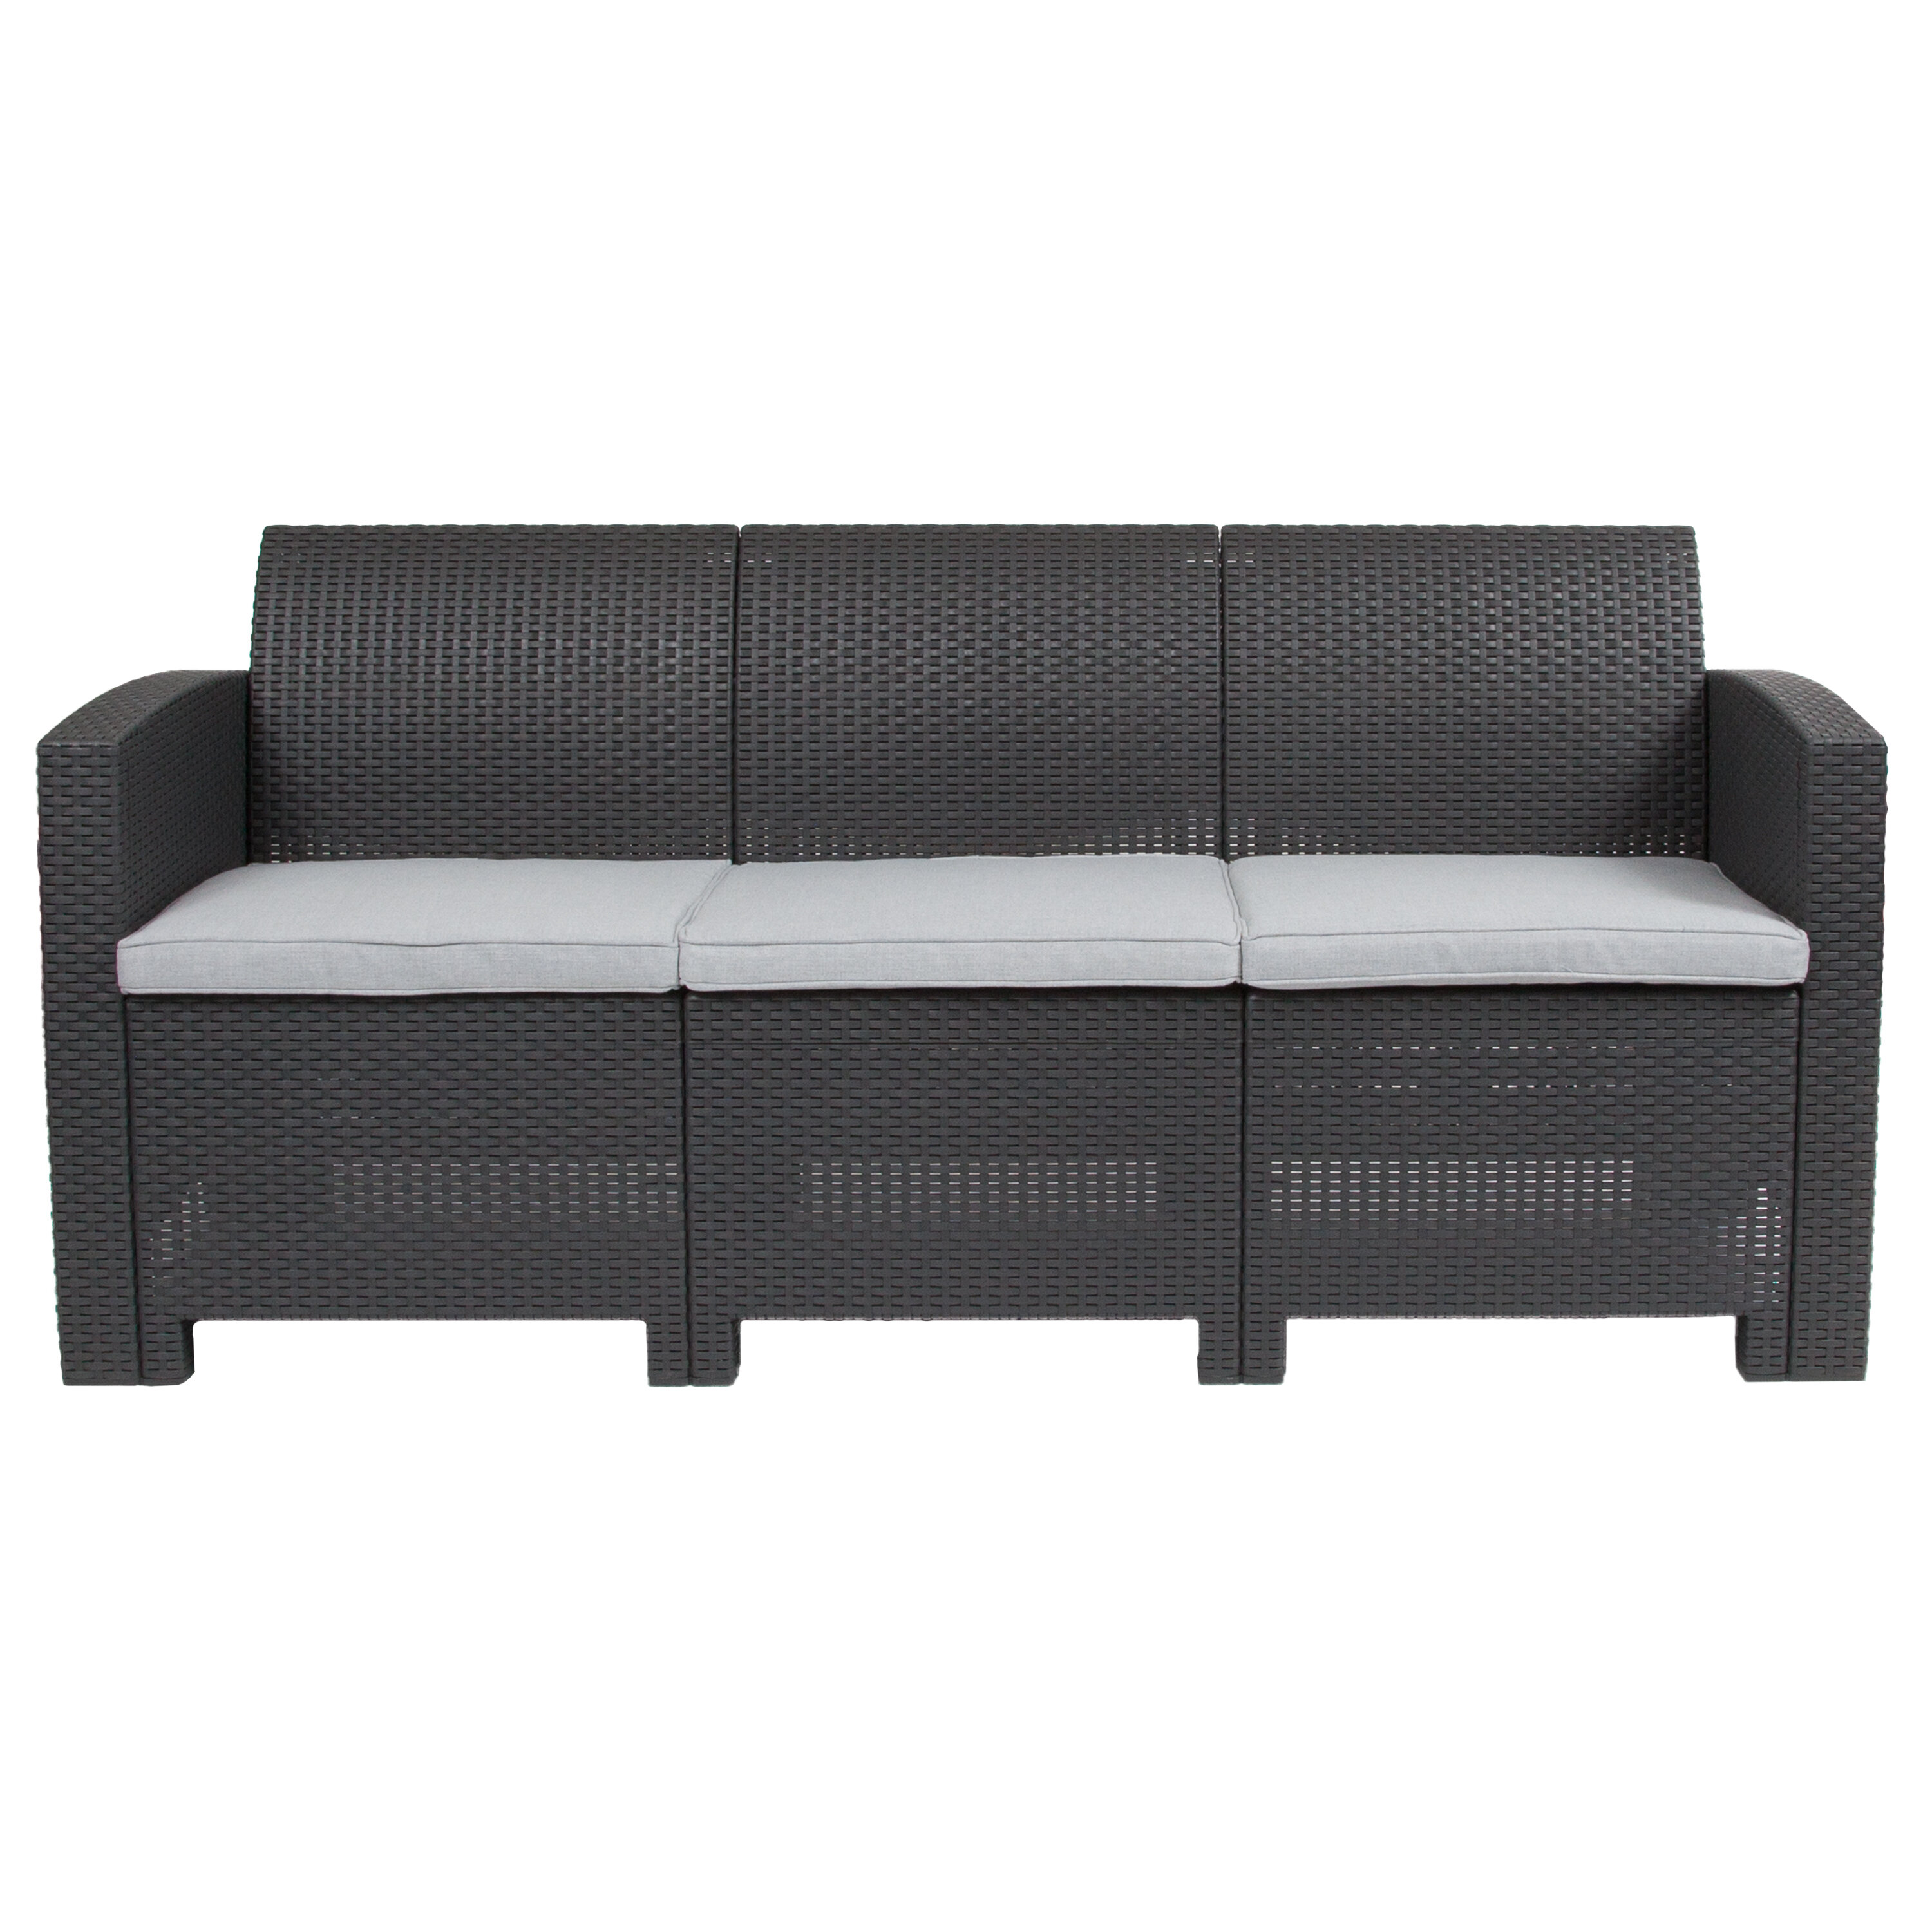 Stockwell Patio Sofa with Cushions